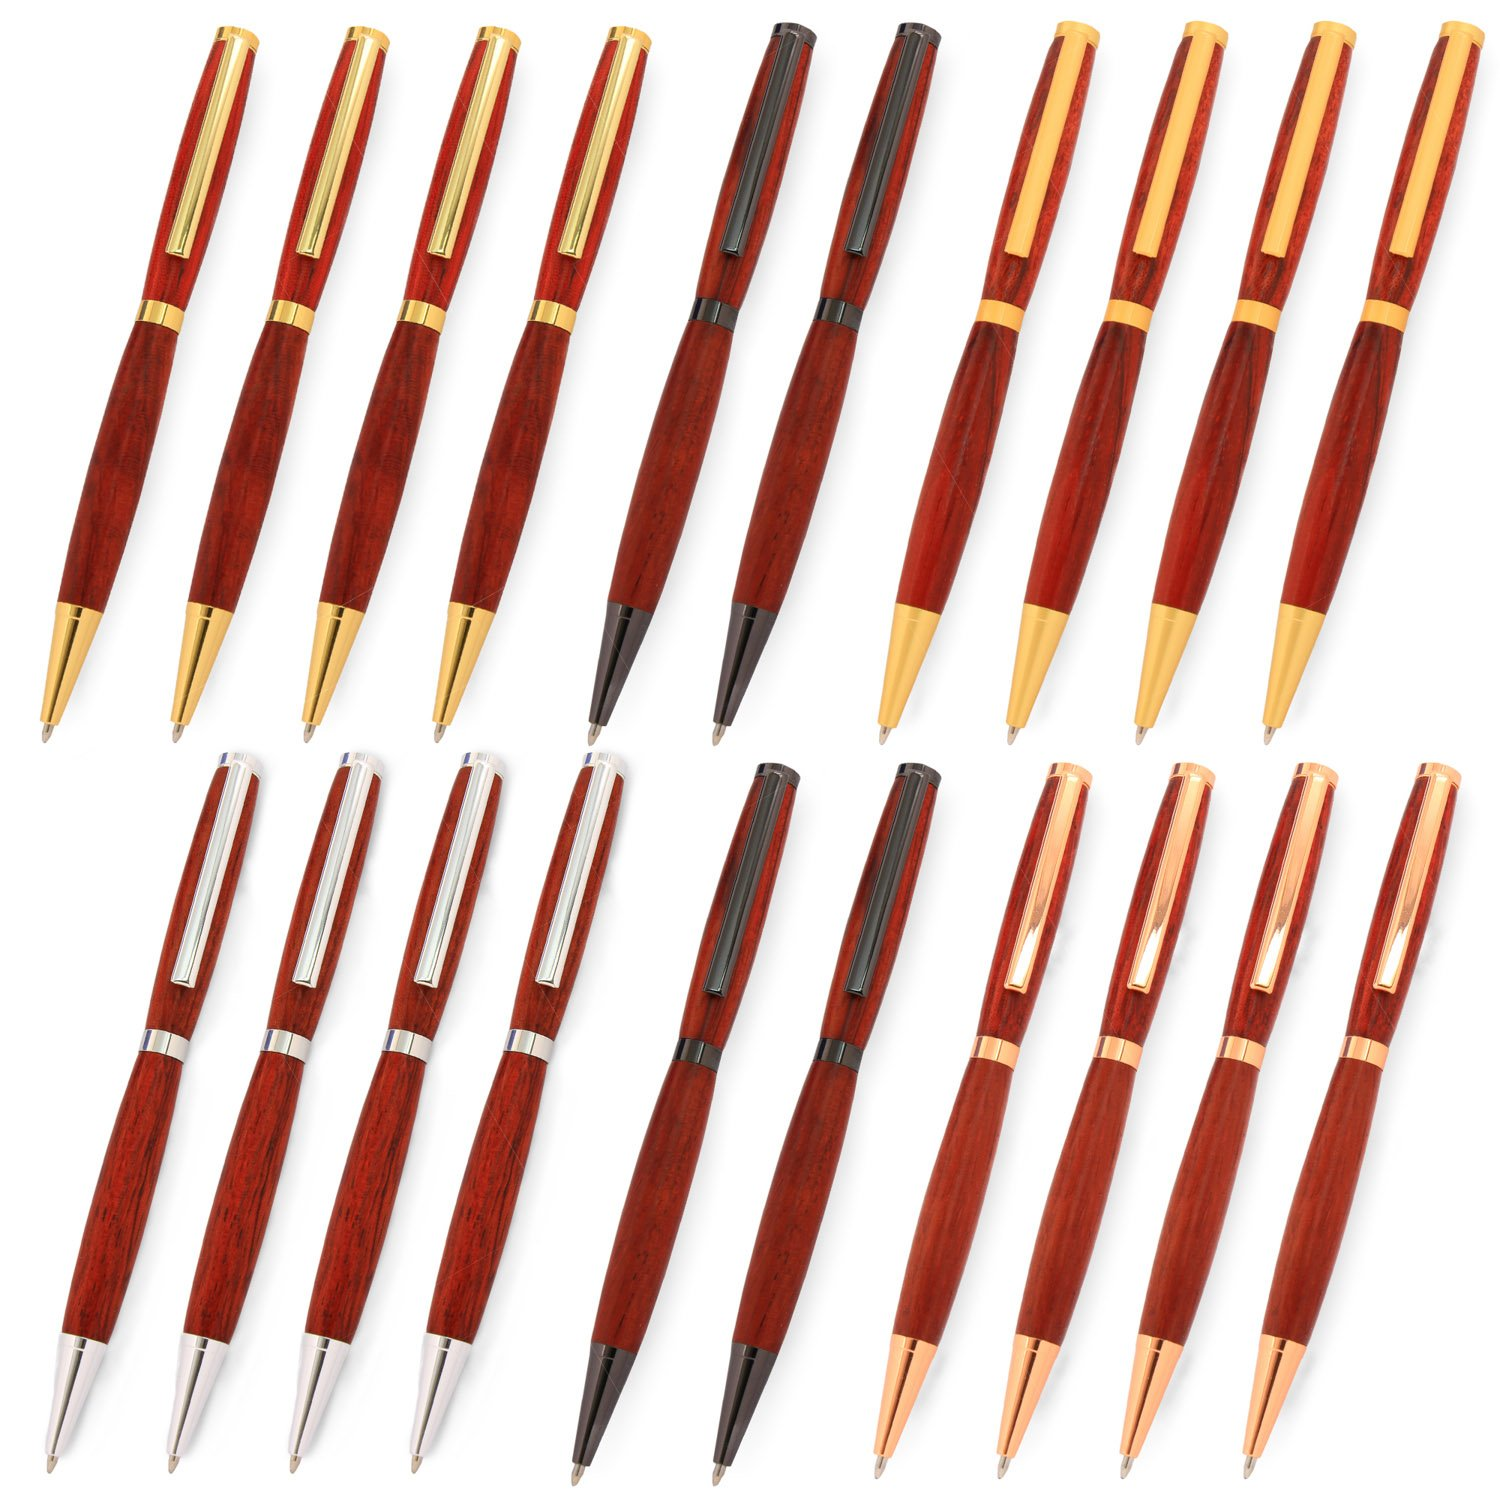 Legacy Woodturning, Slimline Pen Kit, Many Finishes, Multi-Packs  by Legacy Woodturning